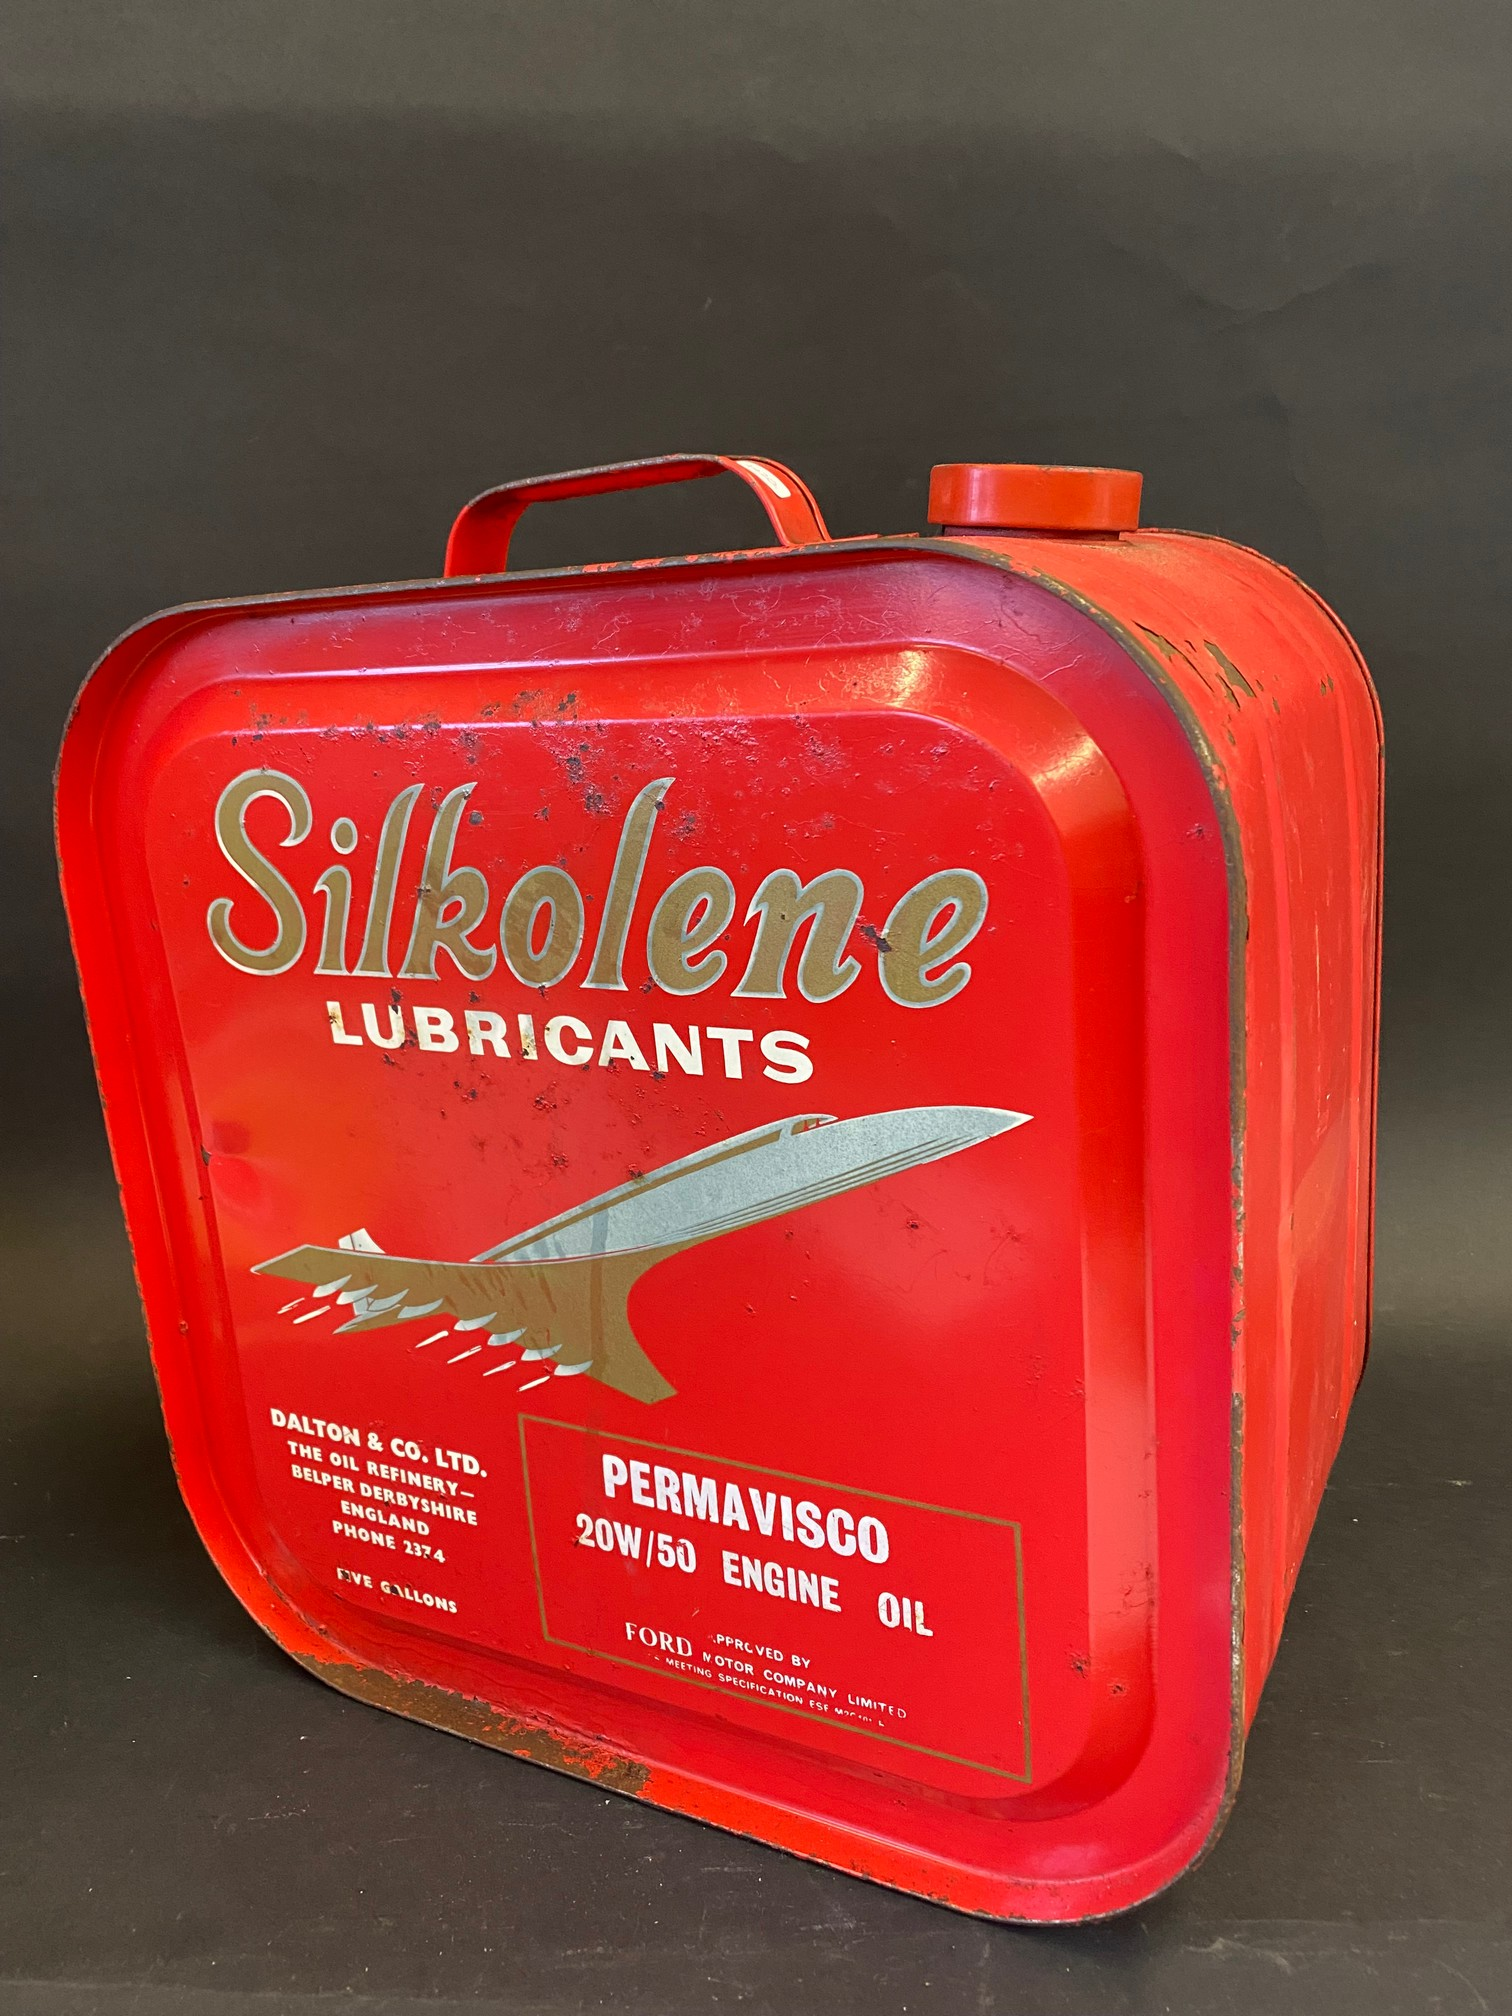 A Silkolene Lubricants five gallon drum with an image of Concorde to either side.